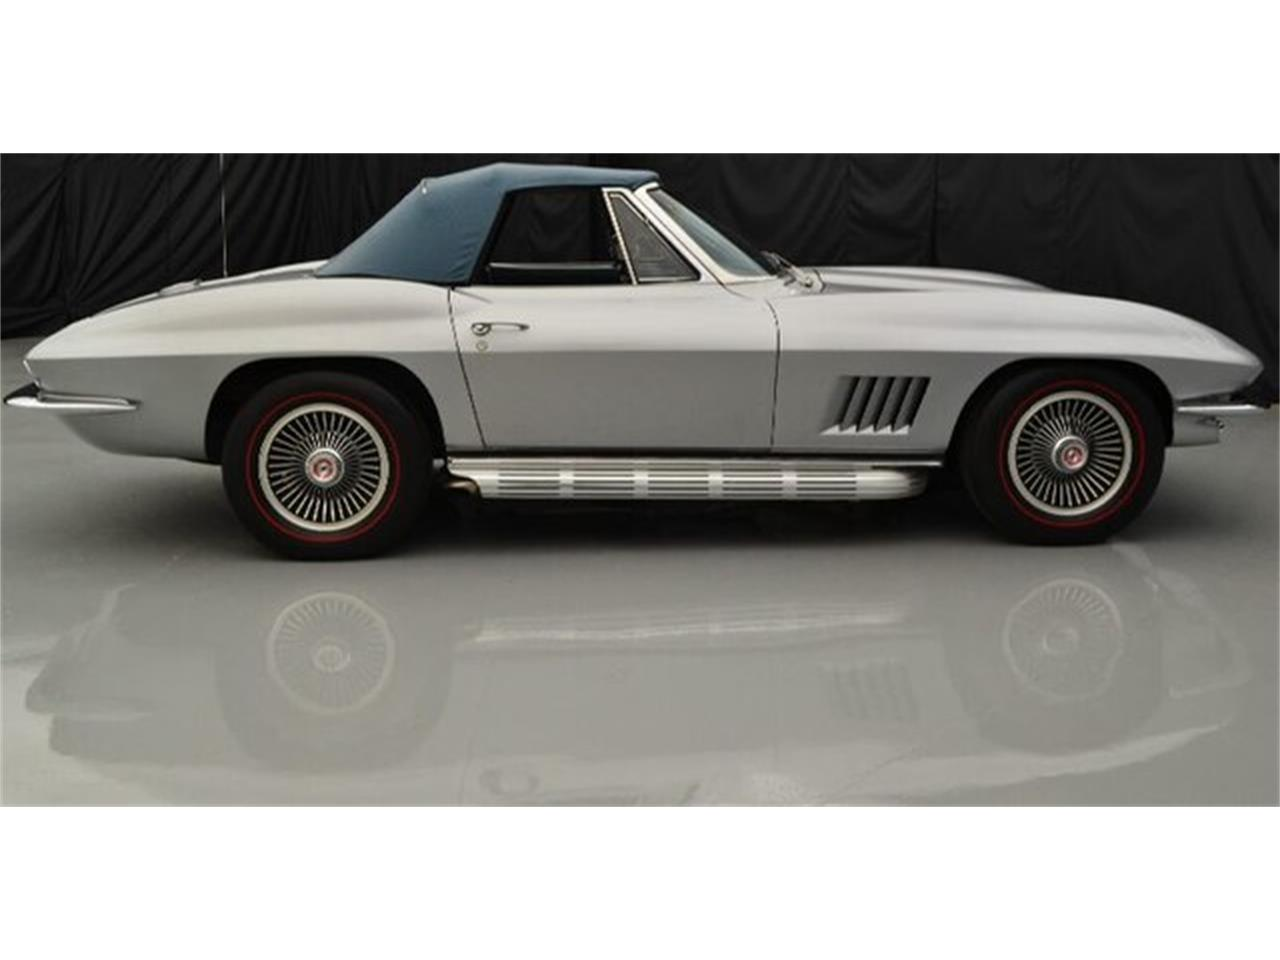 Large Picture of '67 Chevrolet Corvette located in North Carolina - $74,995.00 Offered by Paramount Classic Car Store - PGPV